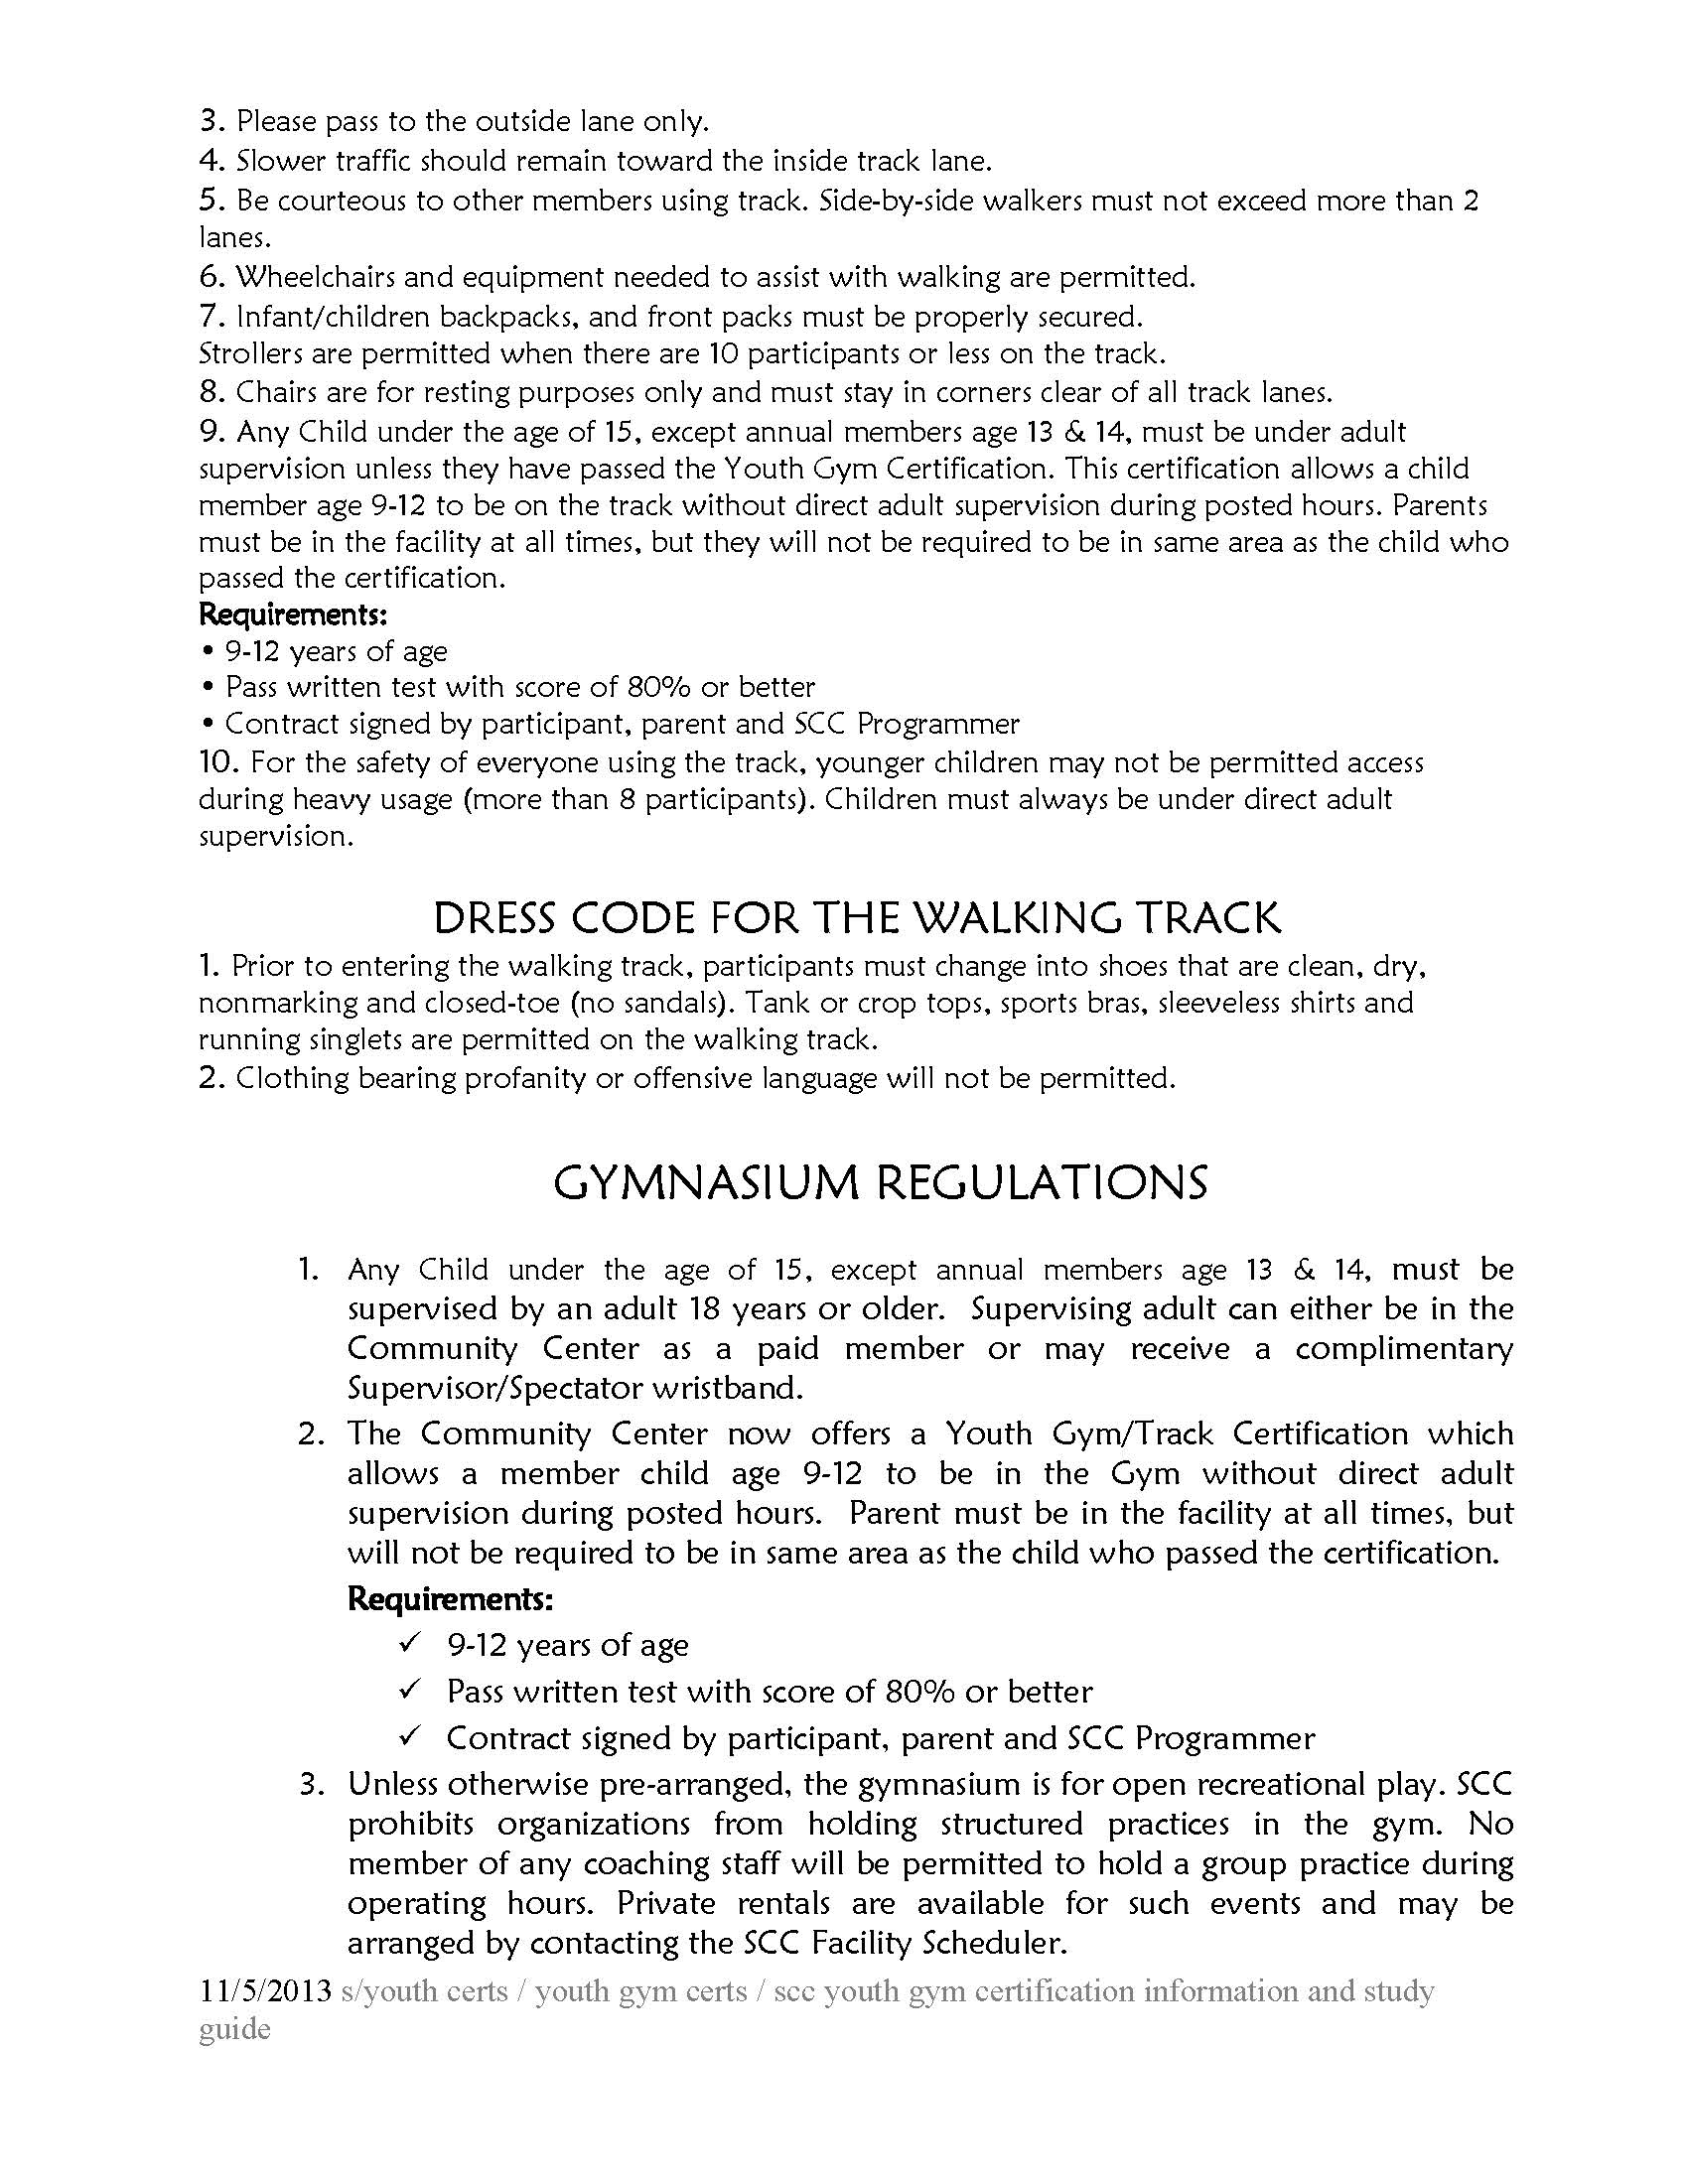 gym track certification Page 2